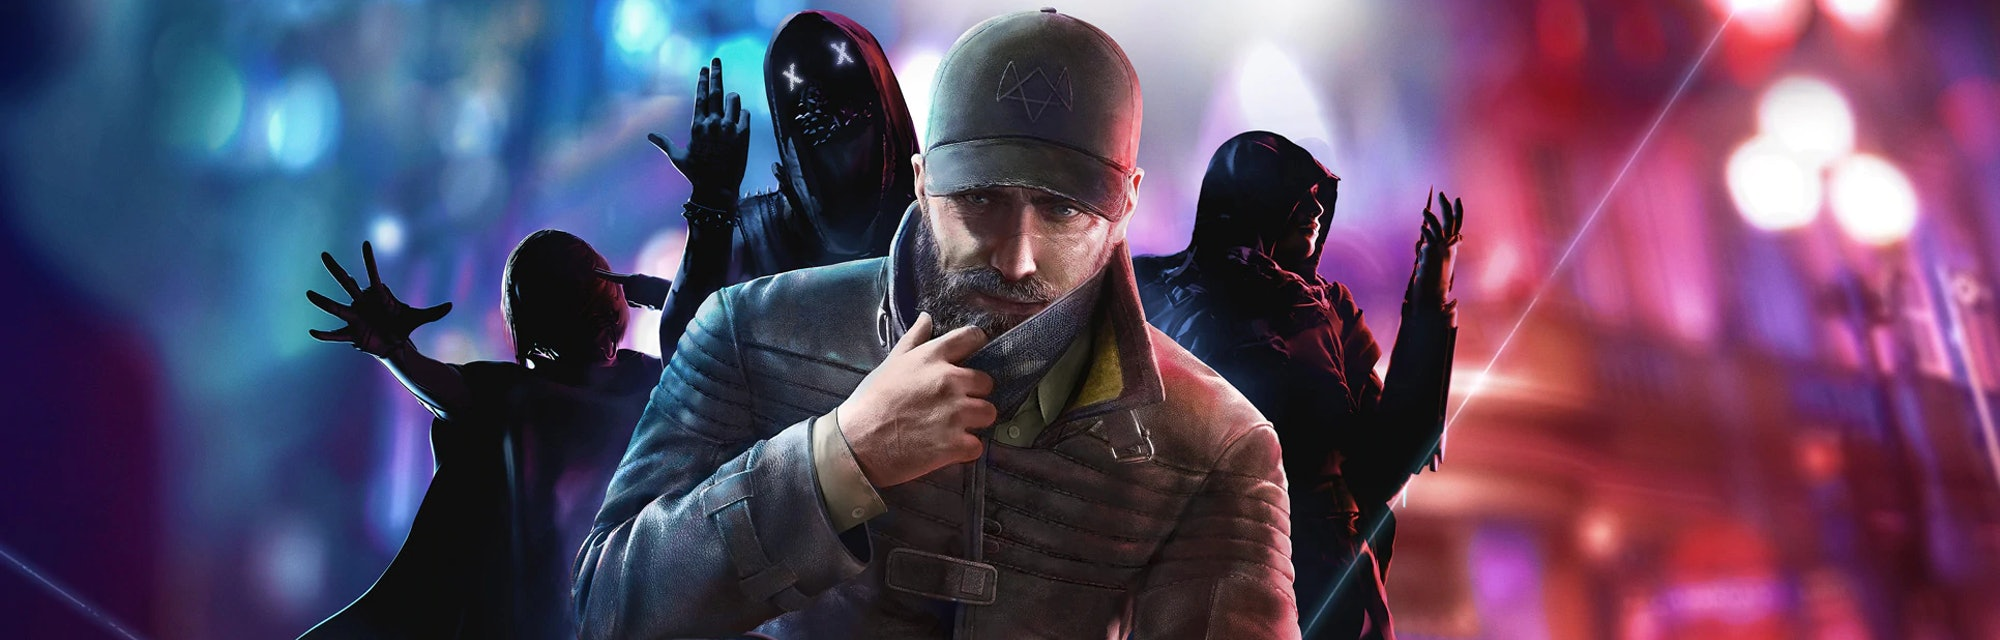 A wallpaper of Watch Dogs: Legion by Ubisoft.